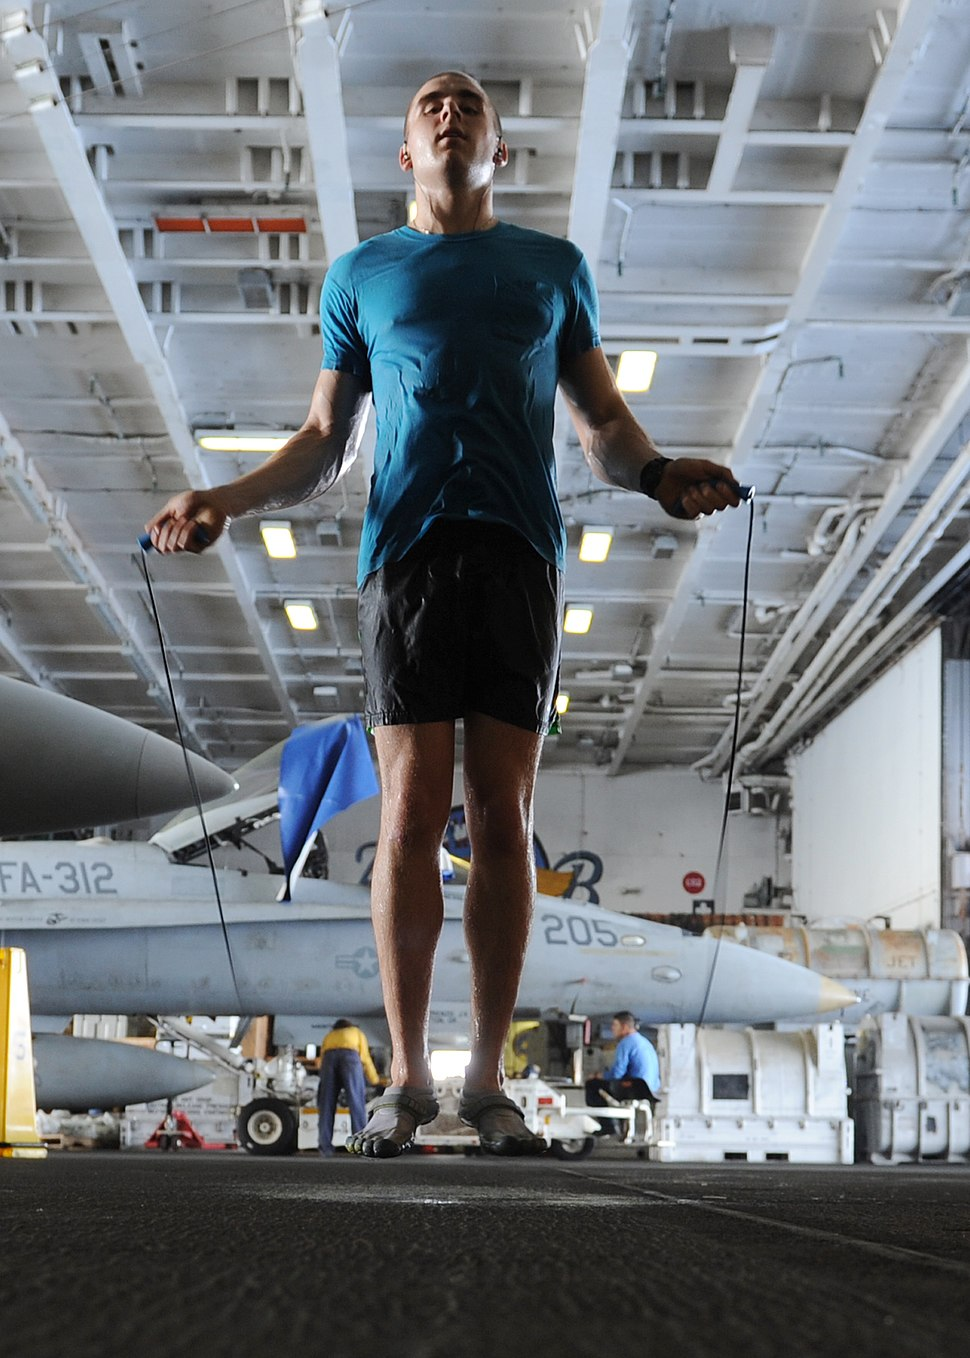 US Navy 101004-N-6427M-149 Airman David Hall, from Buffalo, N.Y., jumps rope during a training session in the hangar bay aboard the aircraft carrie